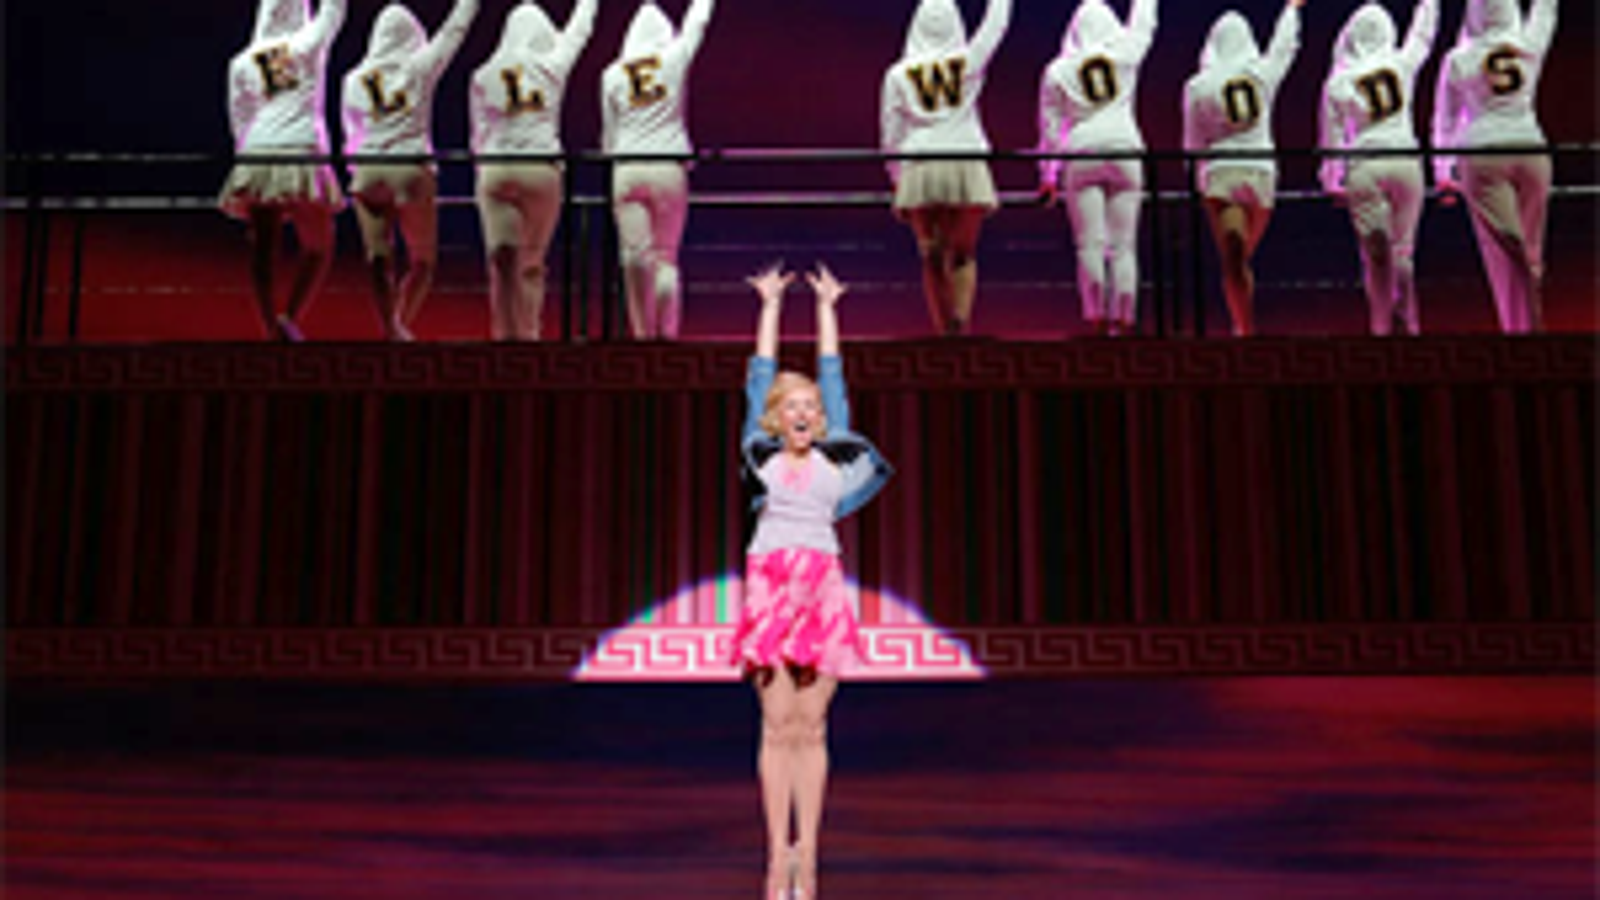 Broadway shows for teens images 328